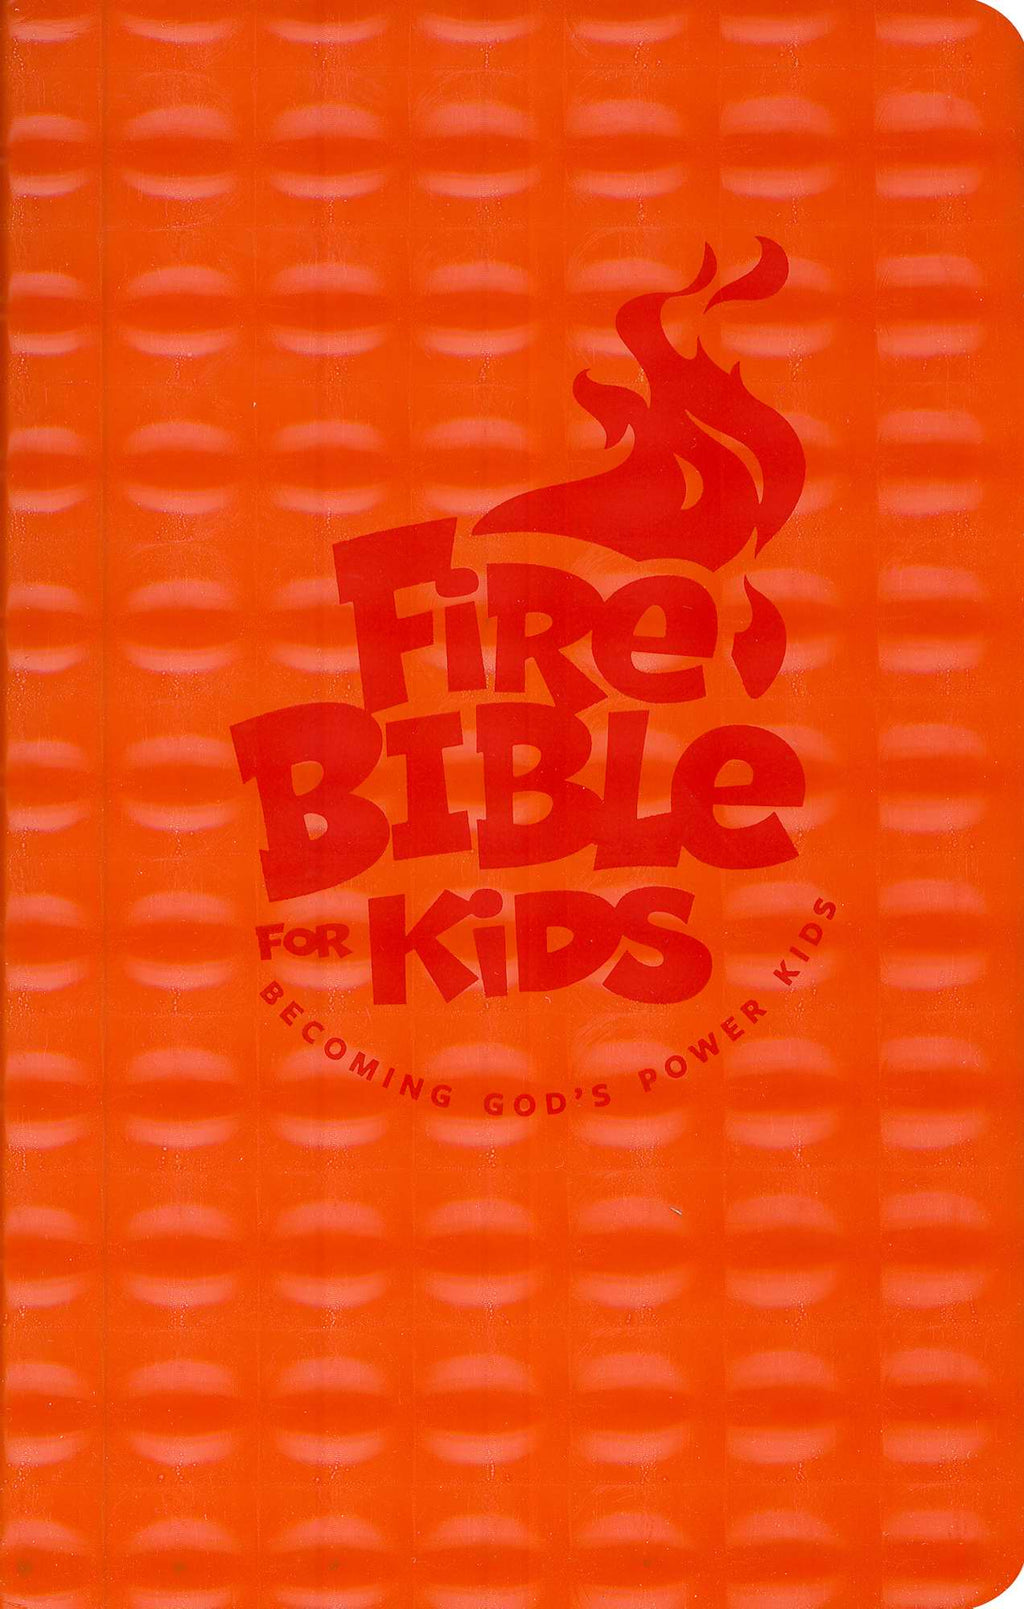 NKJV Fire Bible For Kids-Orange Flexisoft